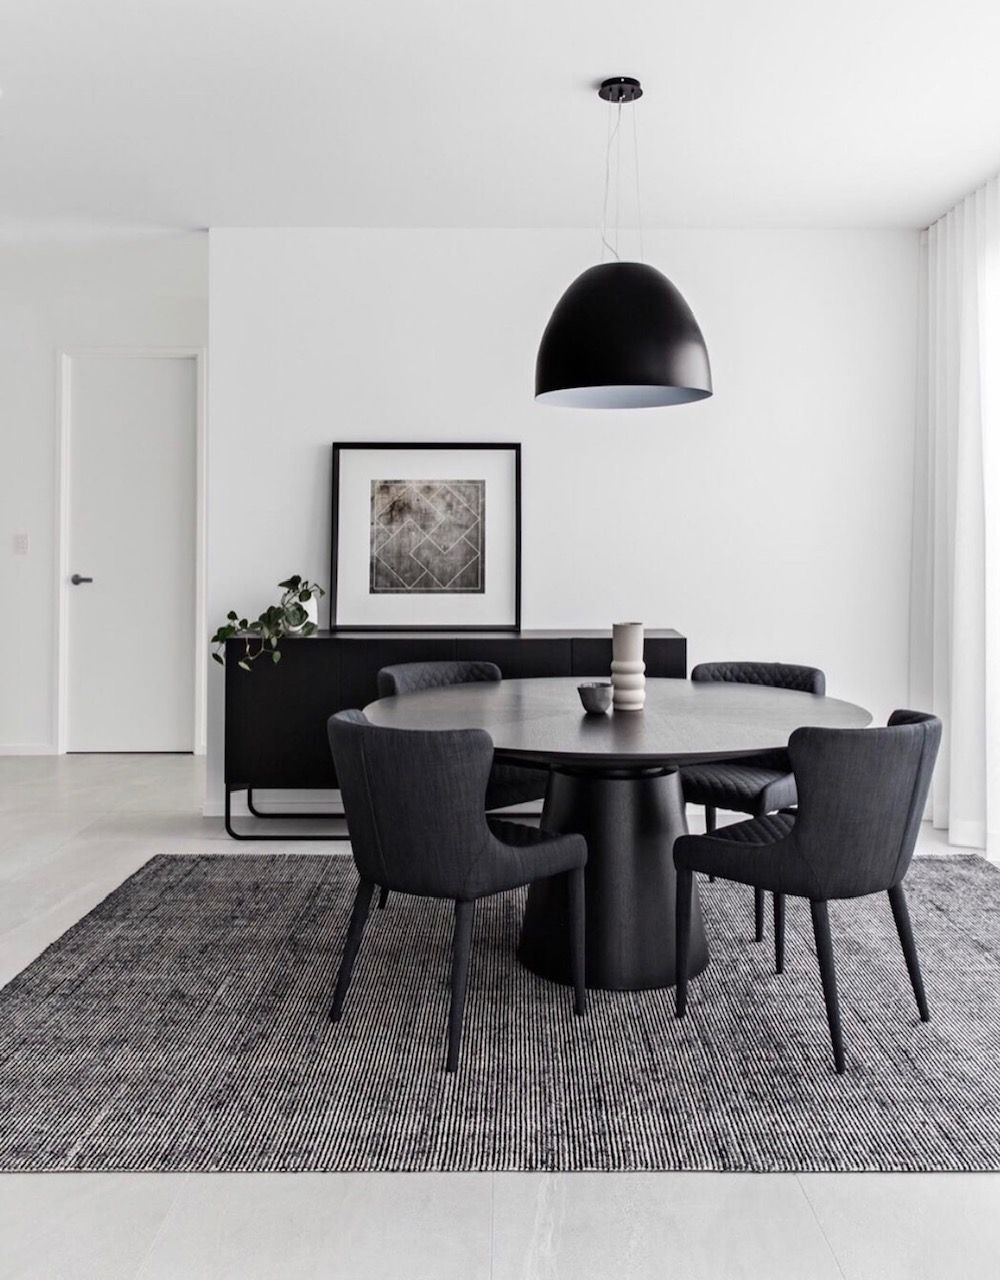 Black Round Dining Table With Black Pendant Light Console And Black Patterned Rug Dinning Tables And Chairs Round Dining Table Dining Table